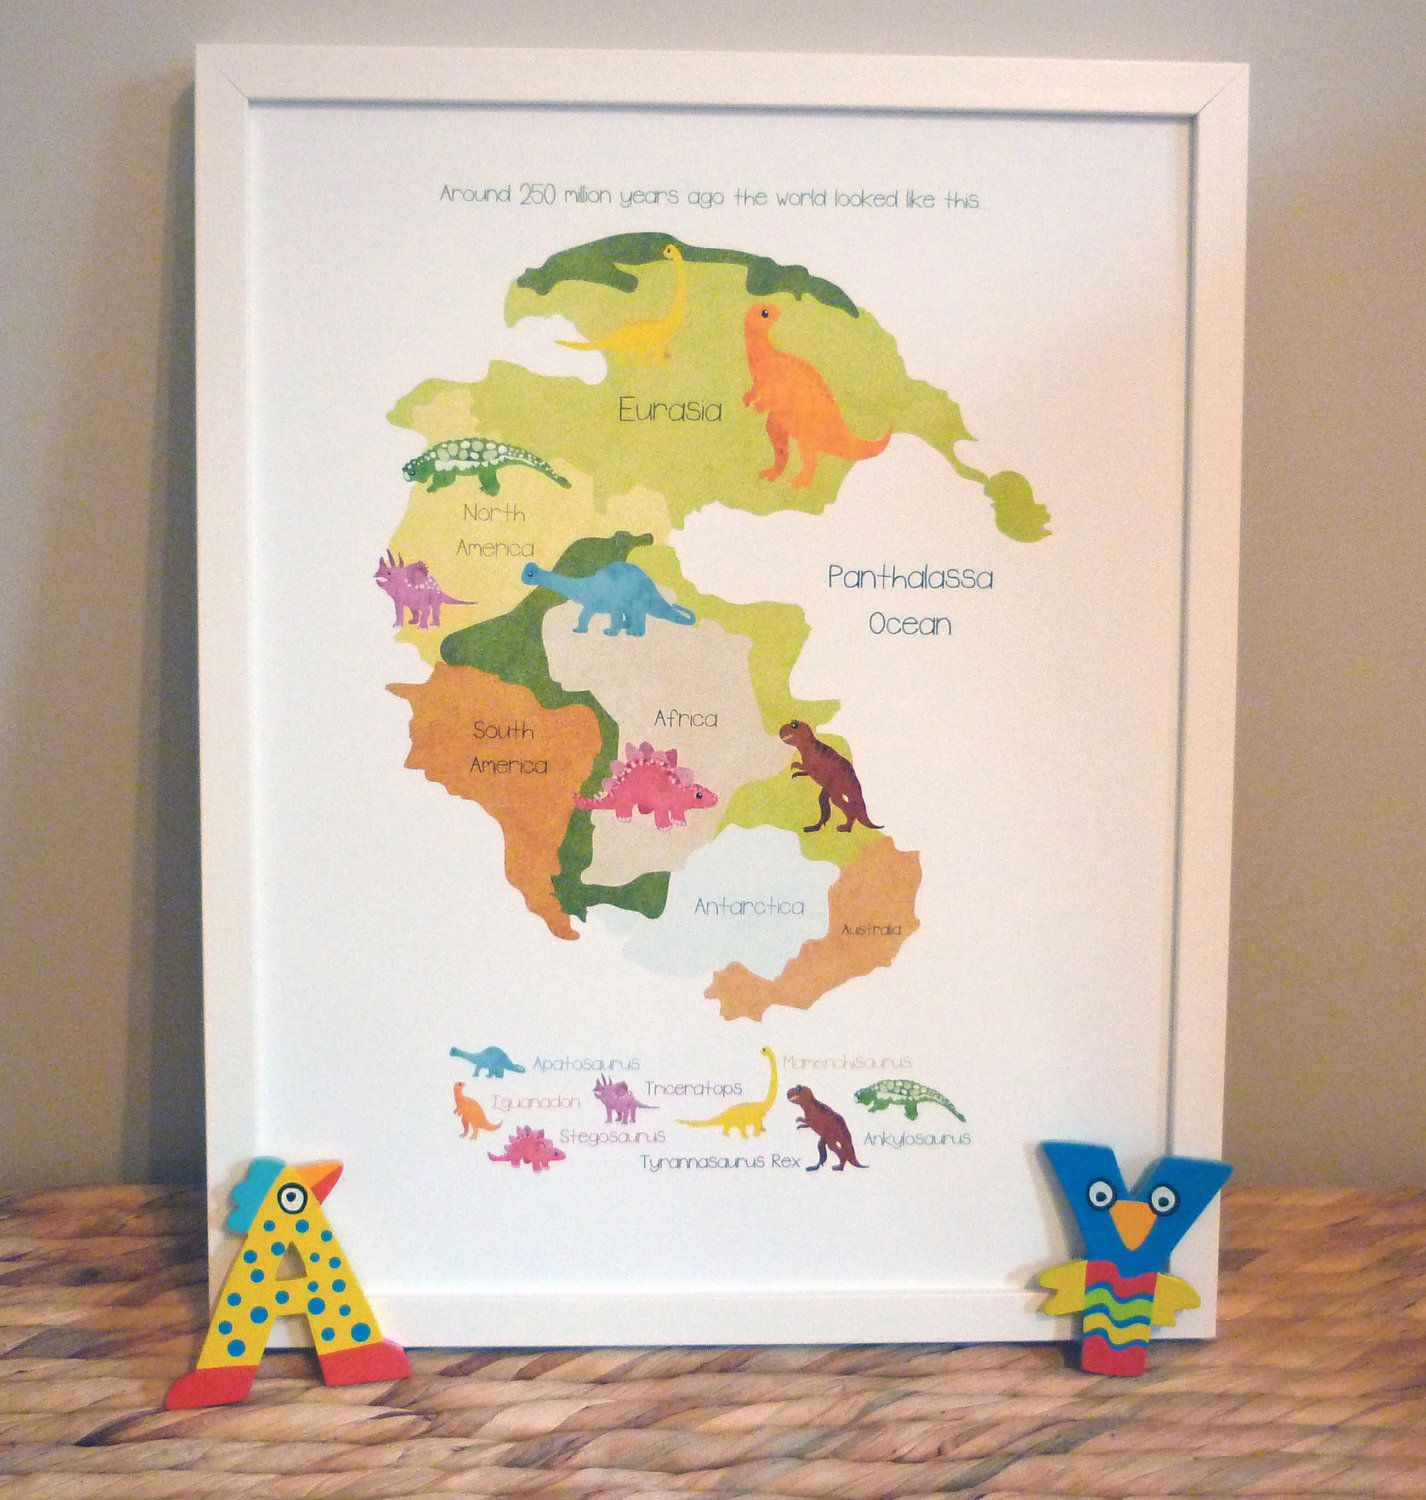 World map map of the world dinosaurs poster print by thispaperbook world map map of the world dinosaurs poster print by thispaperbook 3000 gumiabroncs Images